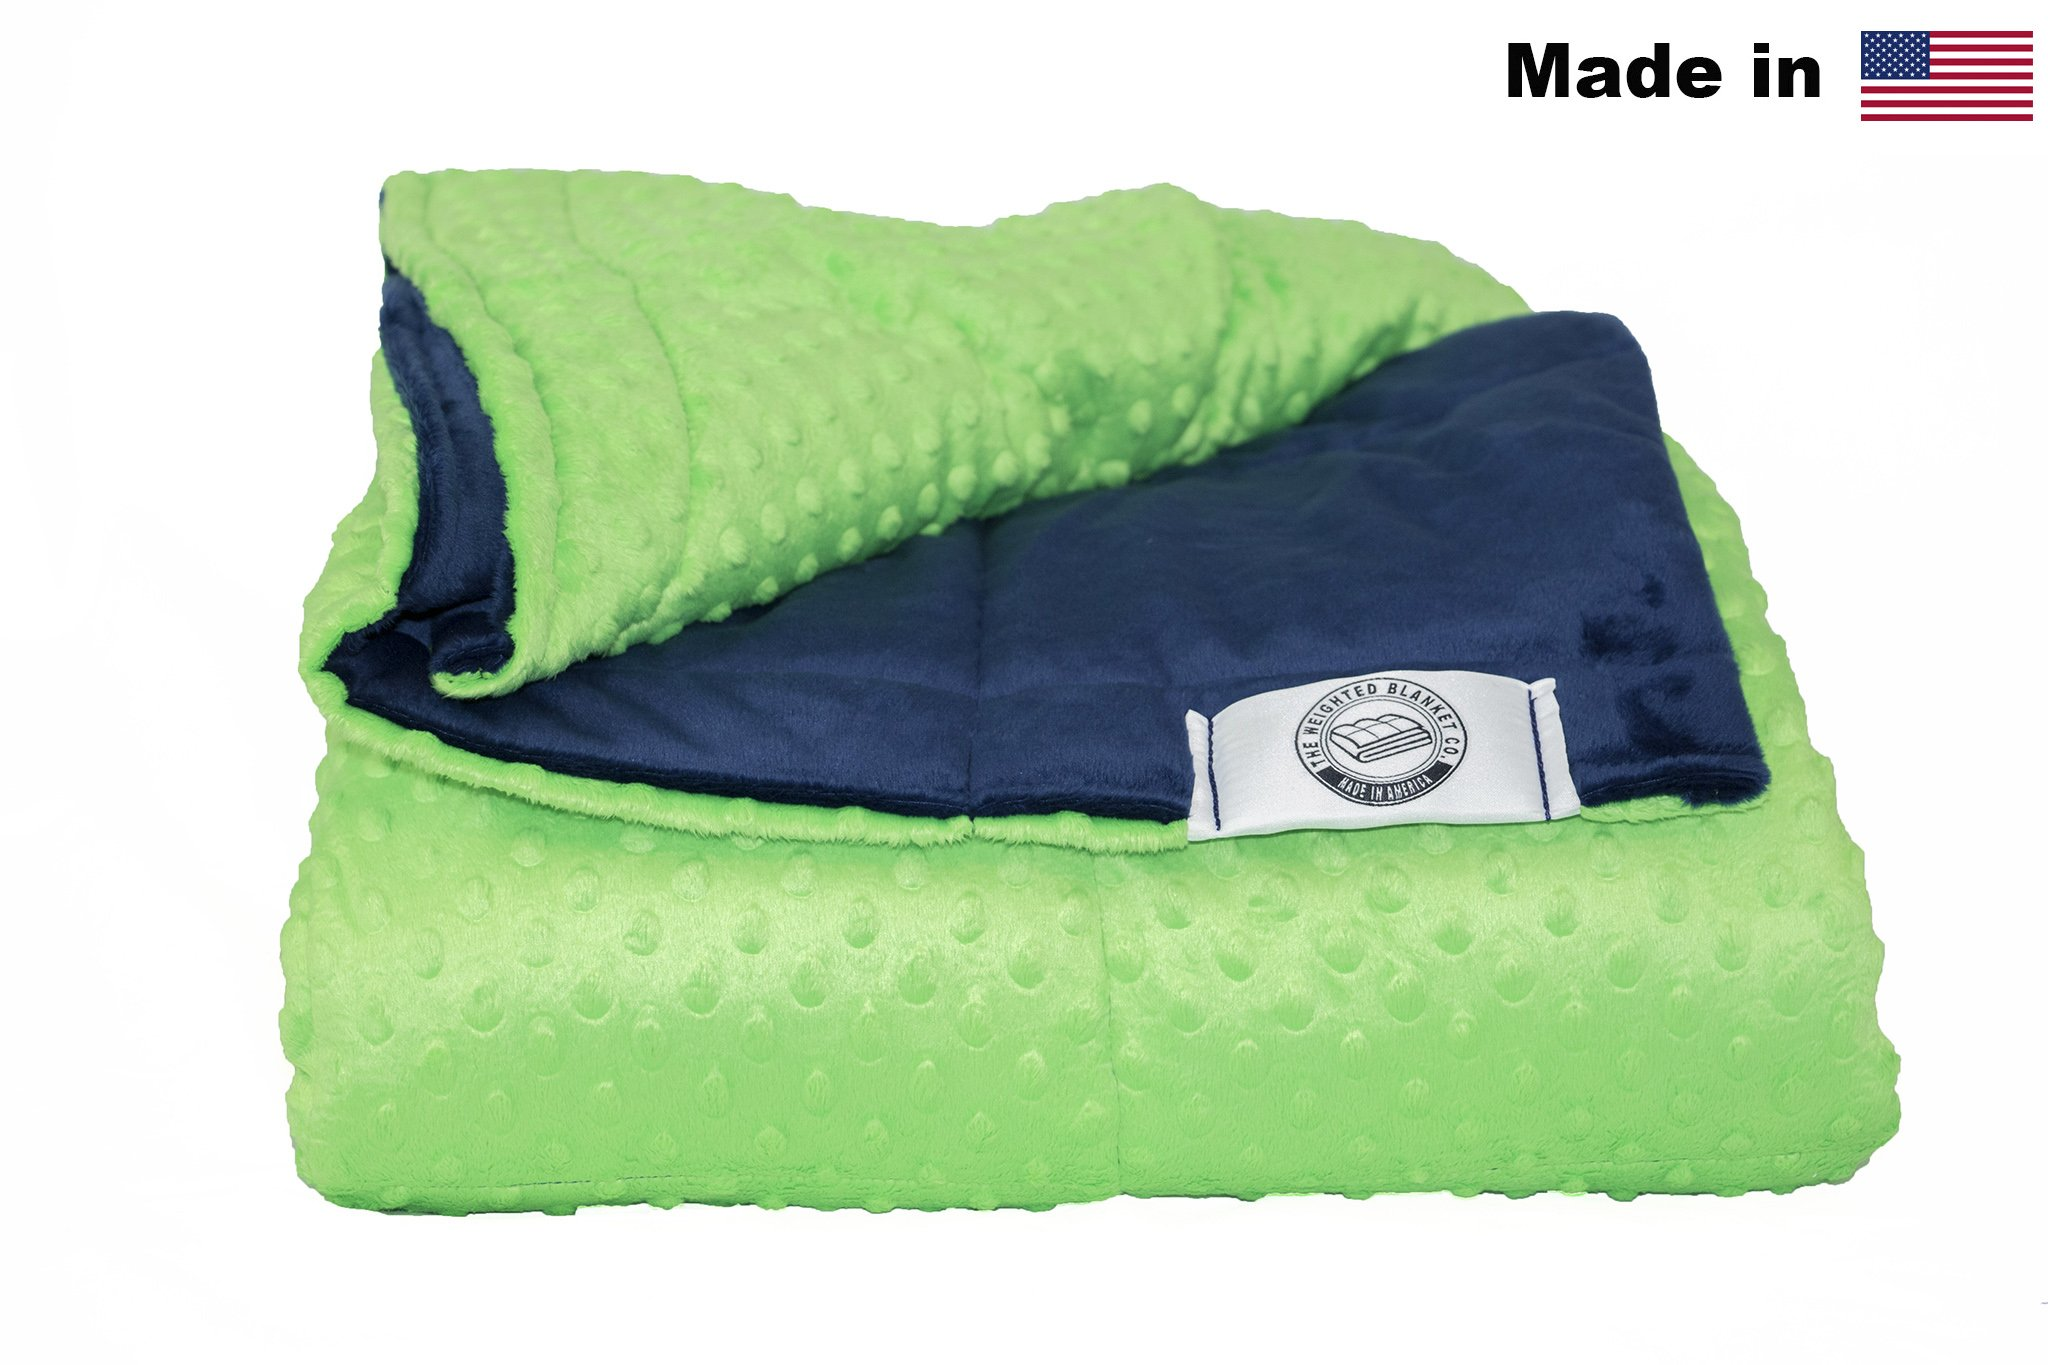 Kids Minky Weighted Blanket -Made In America- Many Sizes & Colors (Navy/Lime, 10lb 42x54)